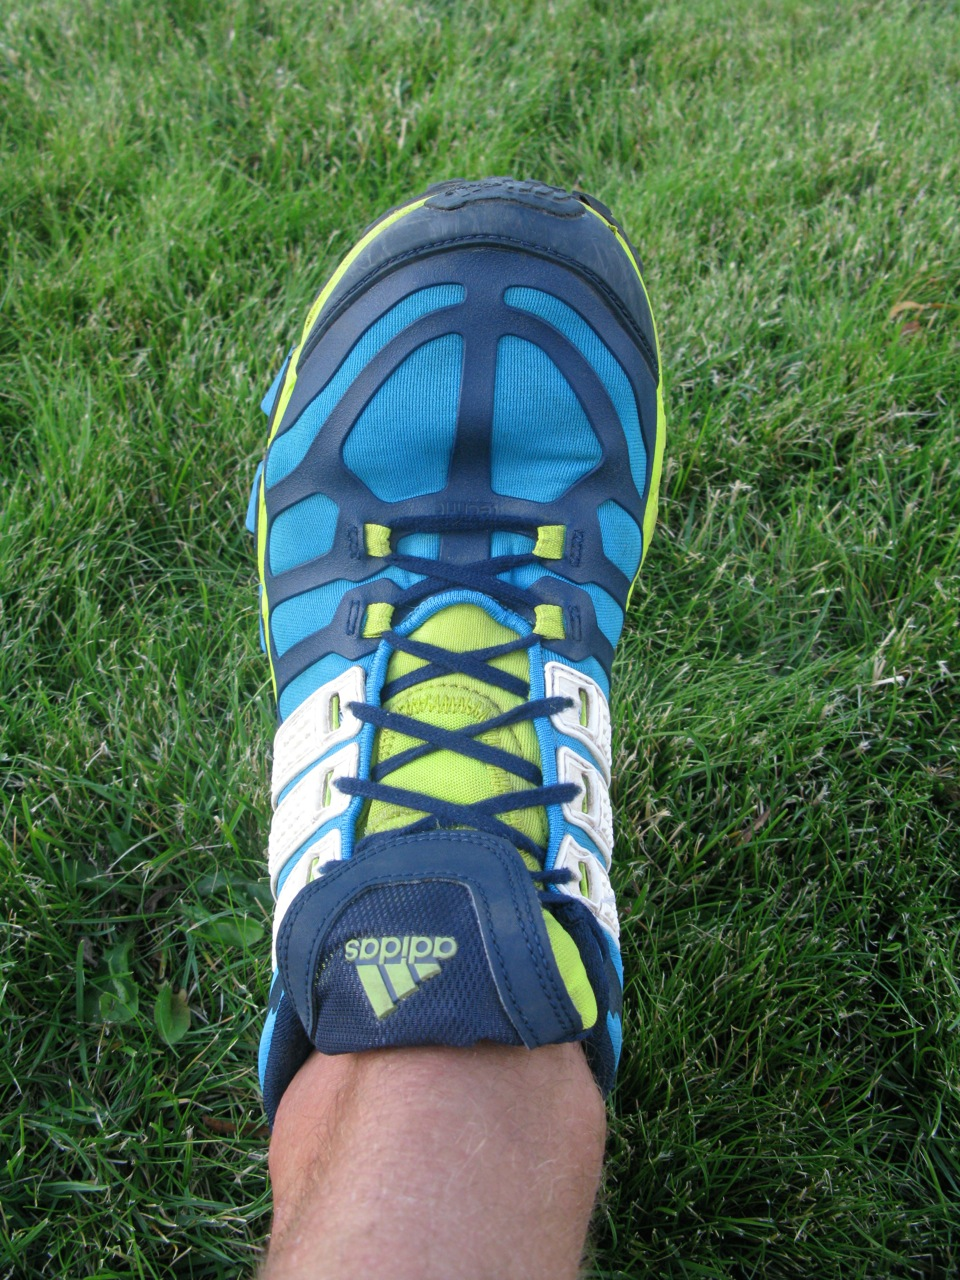 eed682417883 Raven 3 on foot. Fit is much lower volume and I did remove the speed